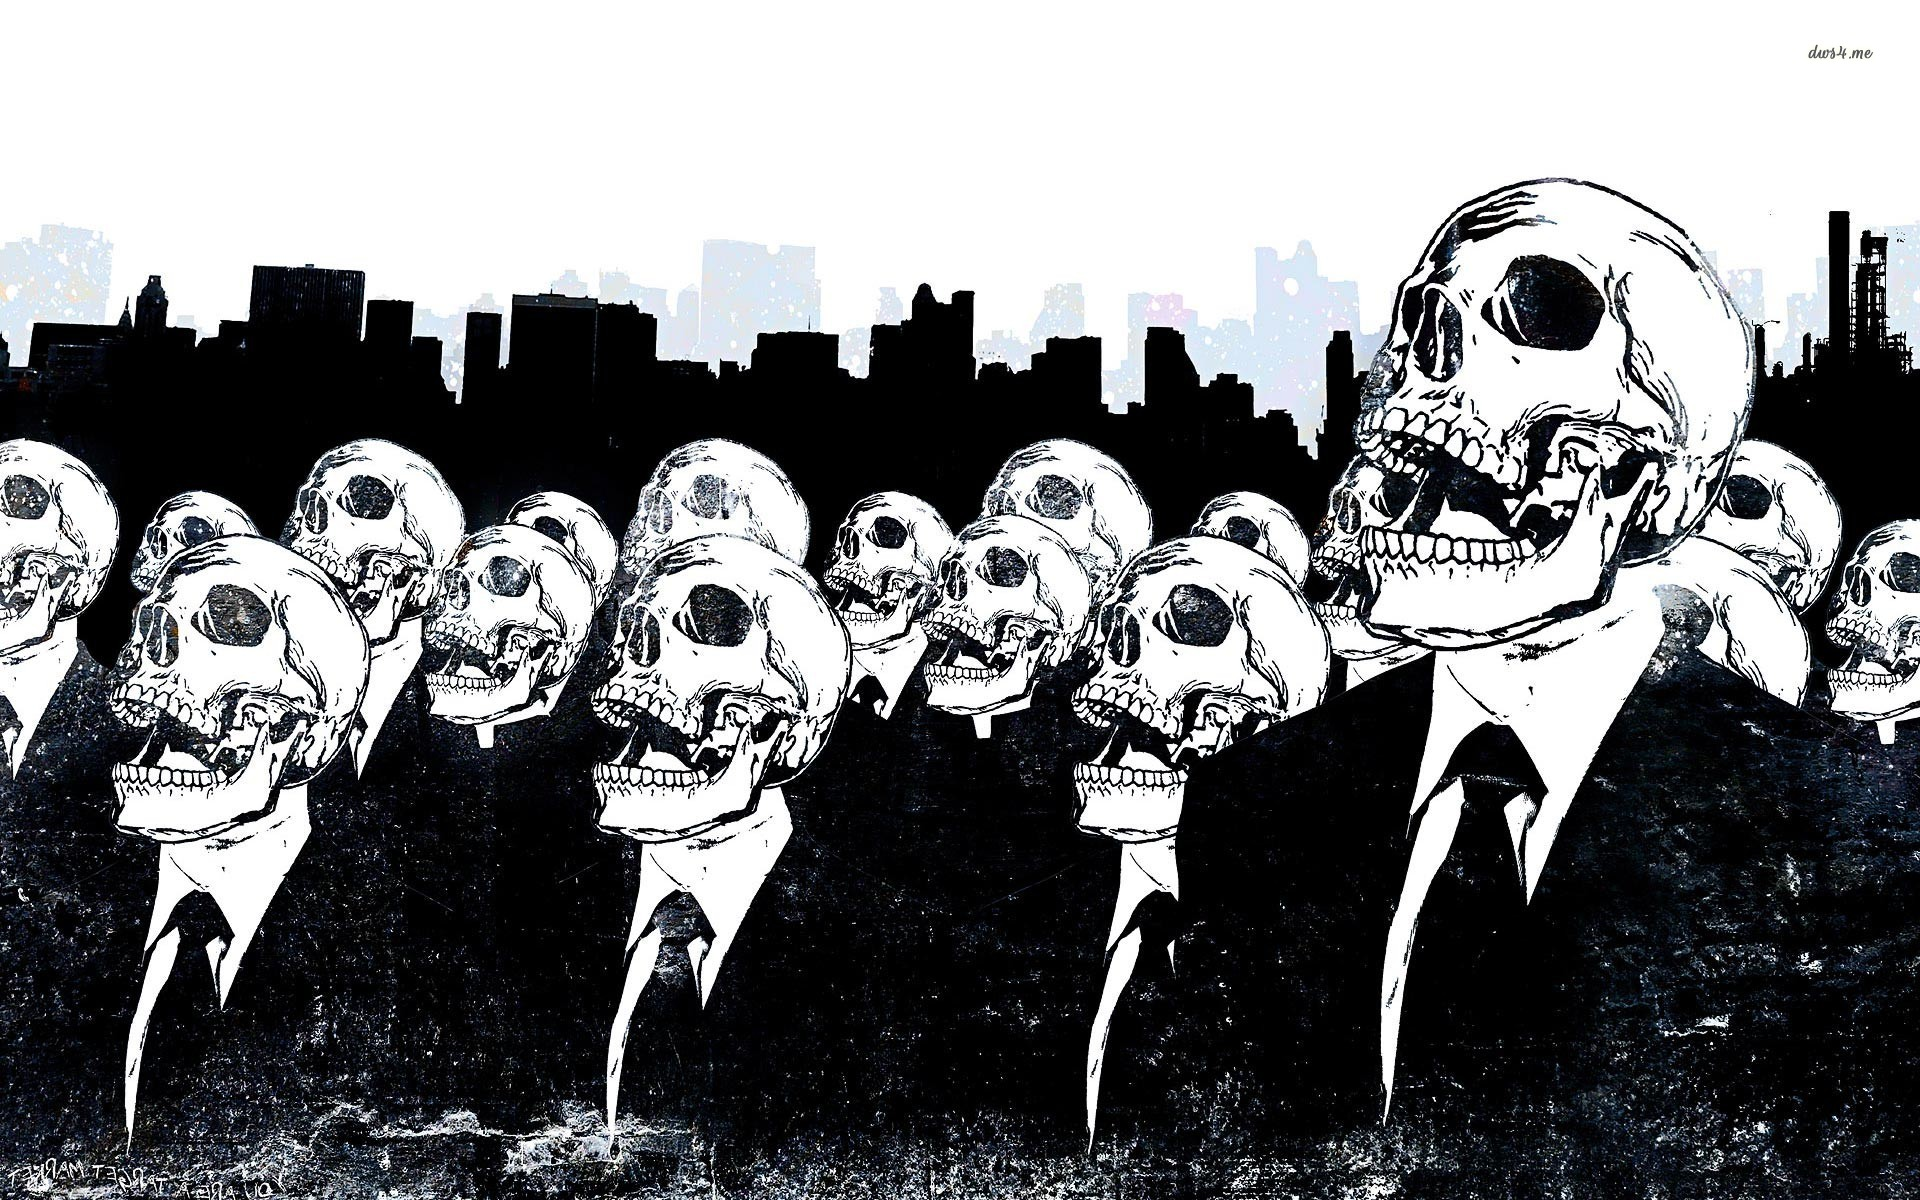 skeleton-crowd